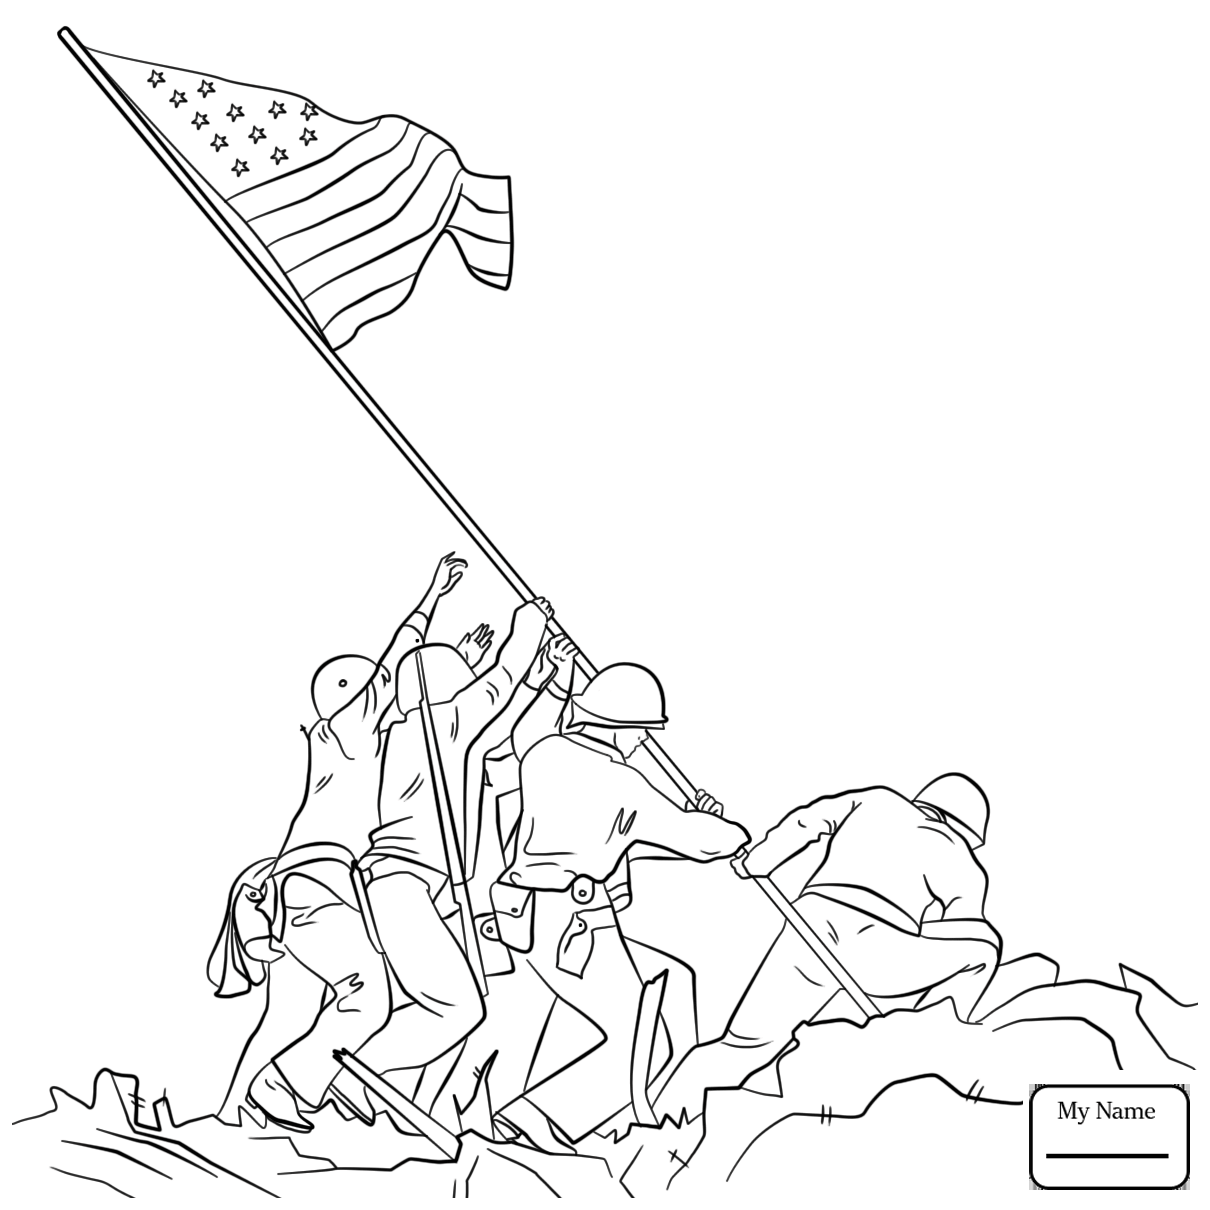 World war 2 drawing at free for personal for World war 2 coloring pages printable